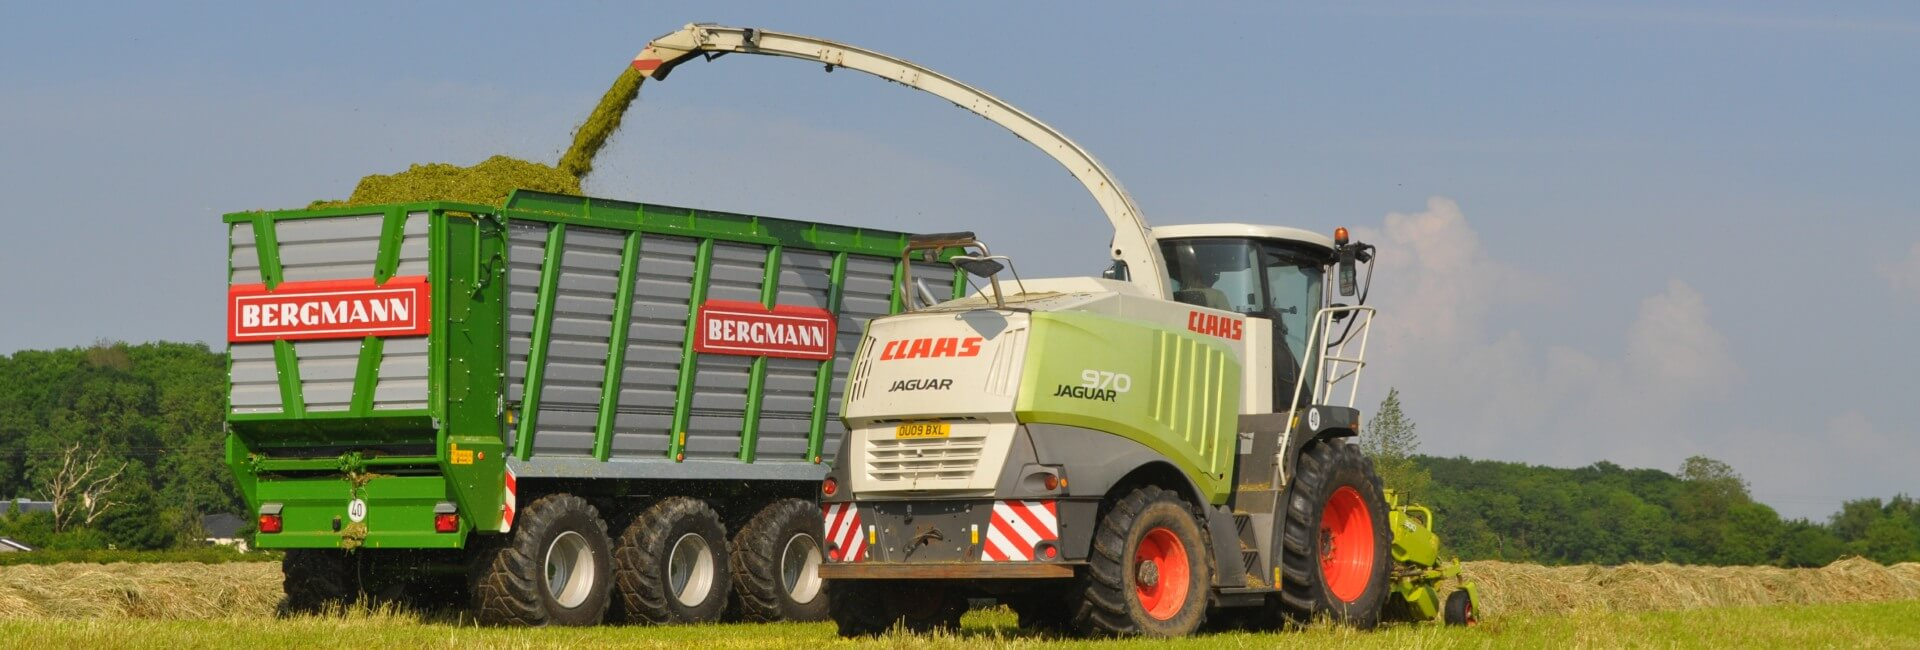 Bergmann silage trailer with class jaguar silage harvester